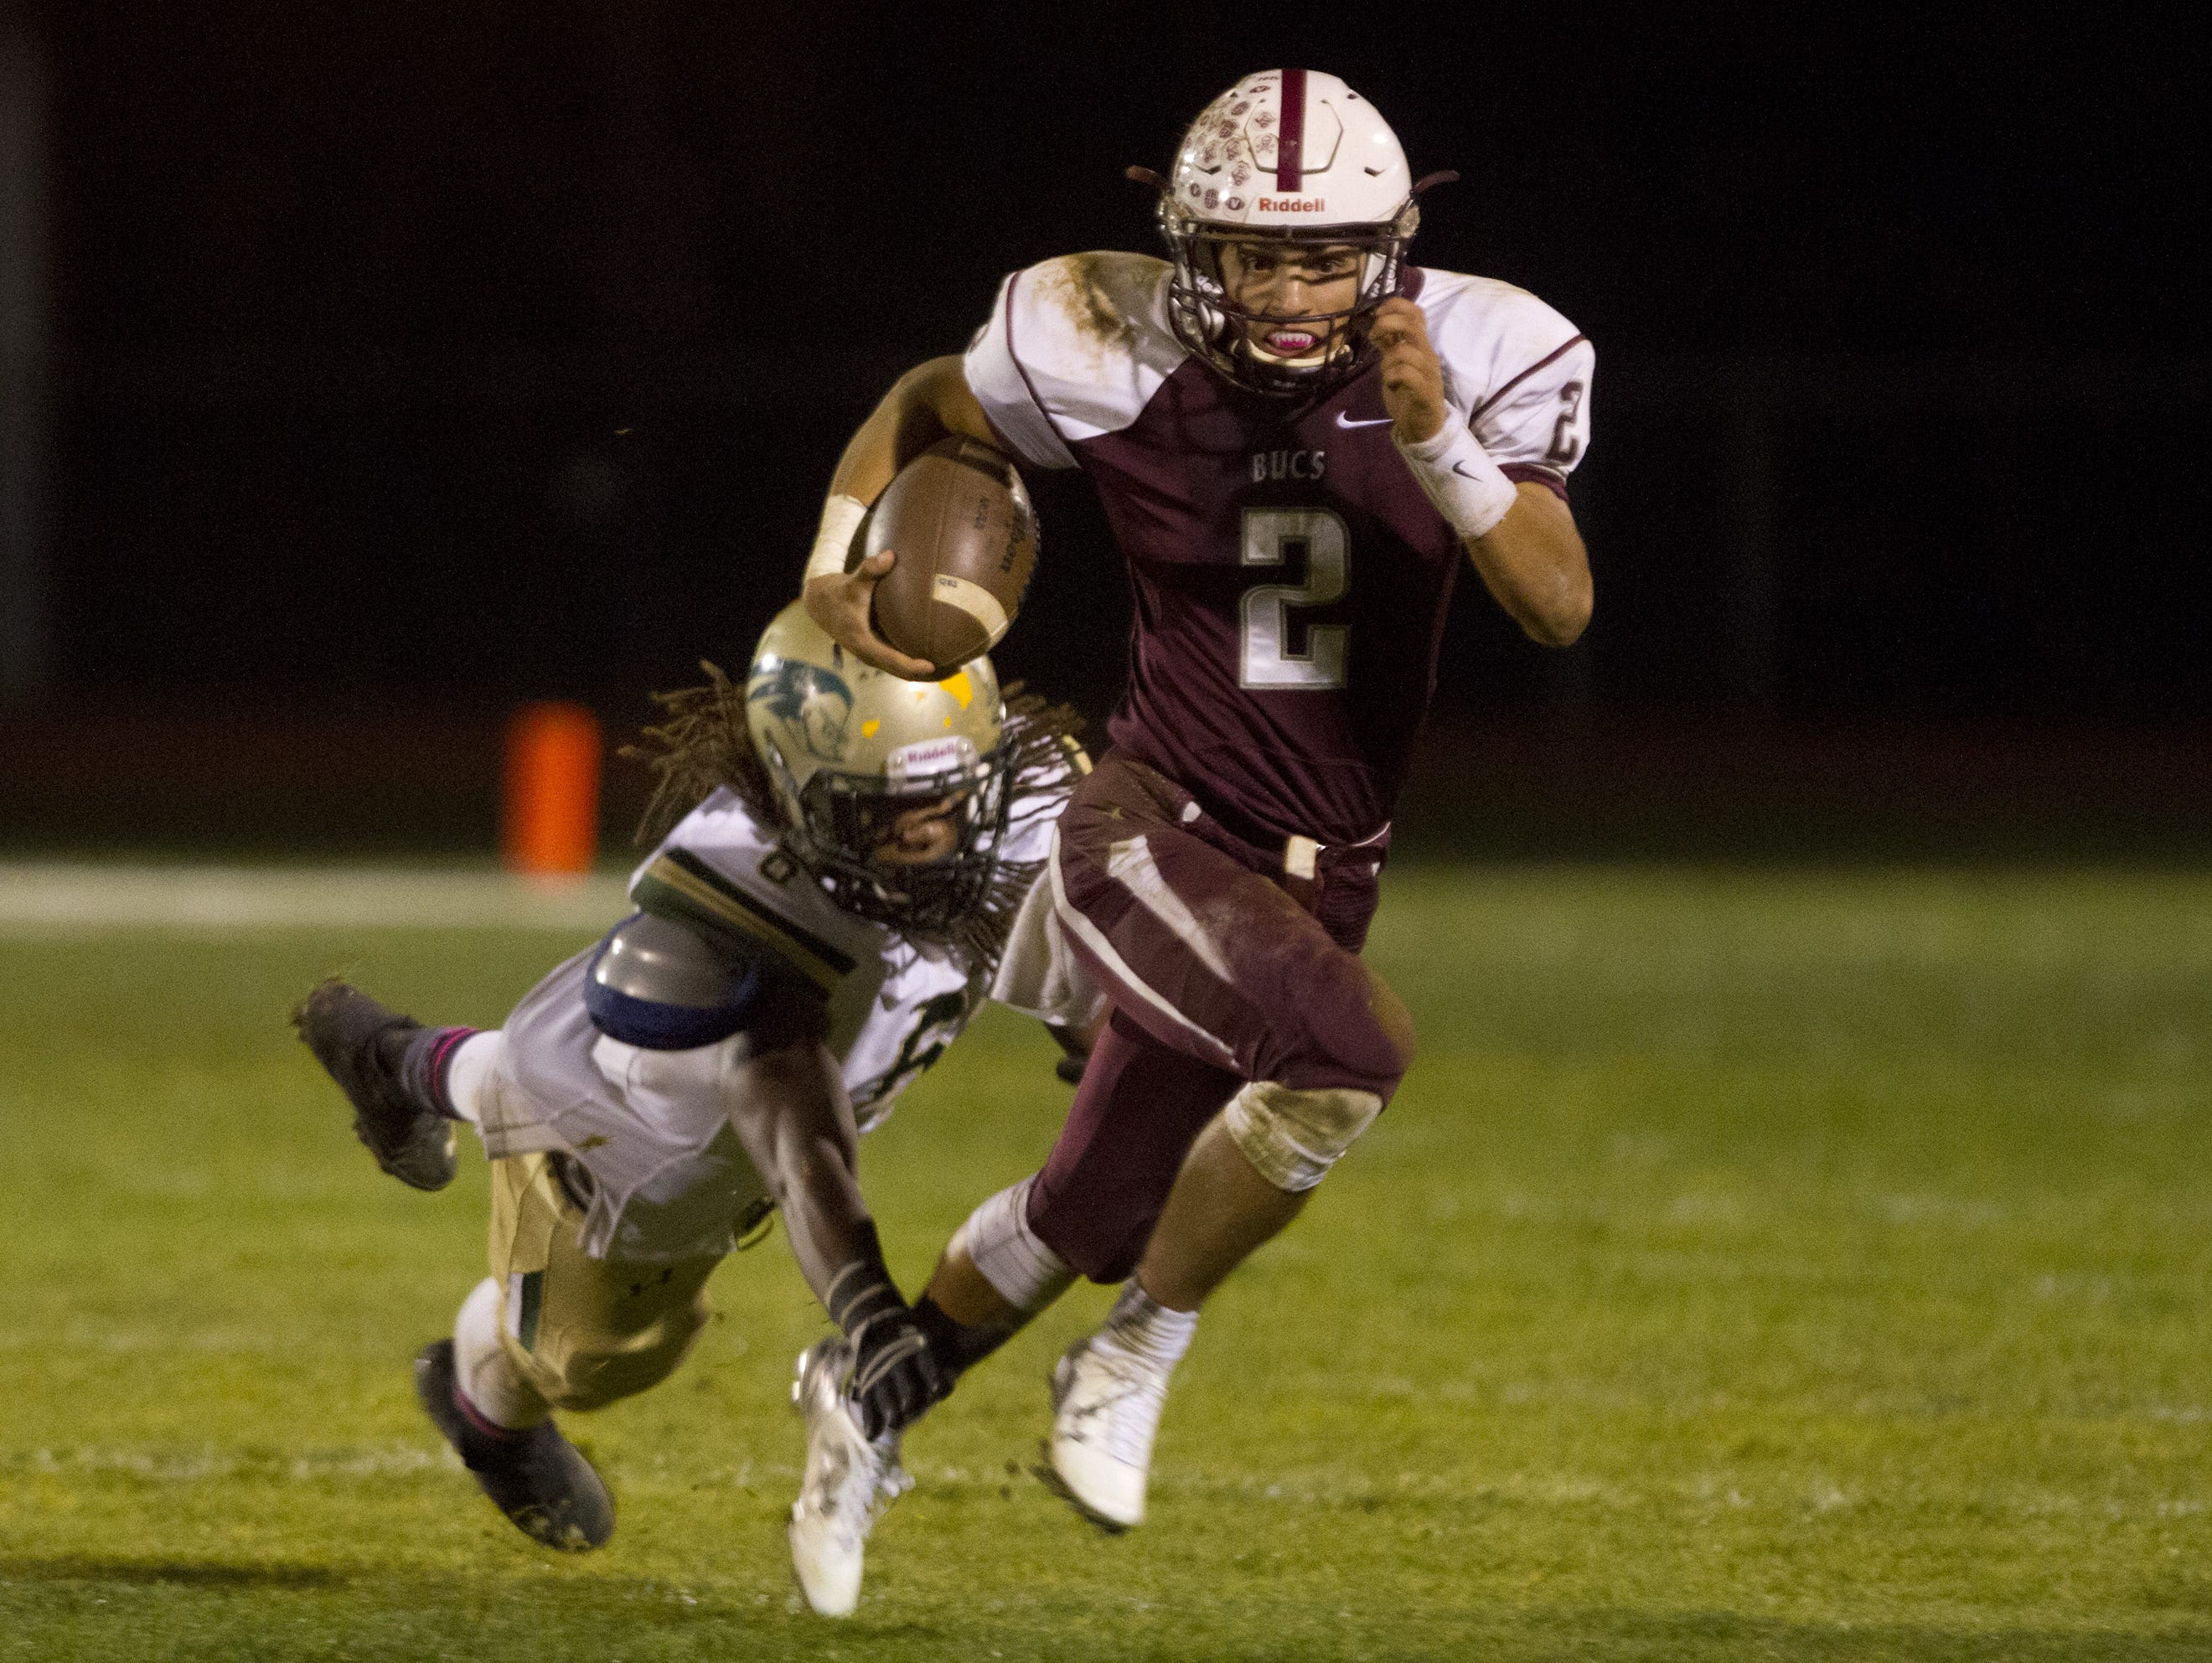 Red Bank Regional senior quarterback Jack Navitsky, shown breaking away for the winning touchdown in the Bucs' win over Red Bank Catholic on Oct. 16, has been among the team leaders for Red Bank during its magical season.